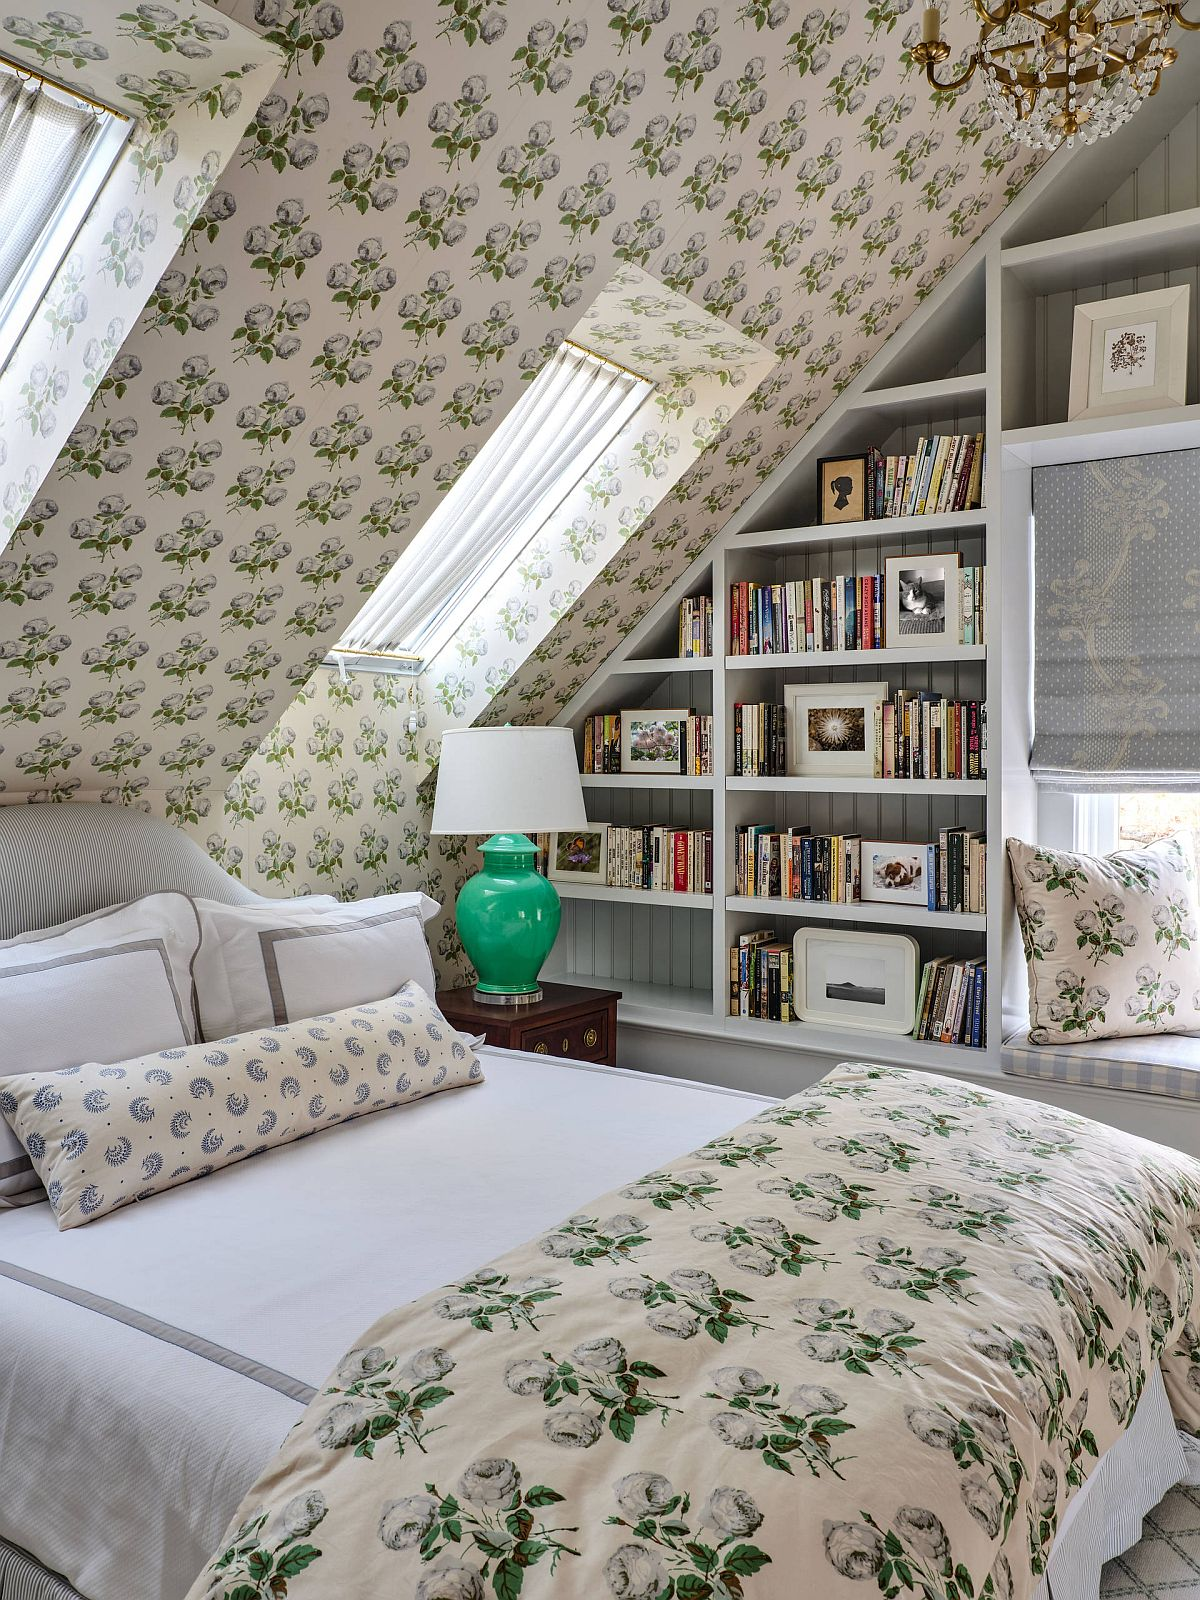 Find space for the tranquil reading nook in the tiniest of bedrooms